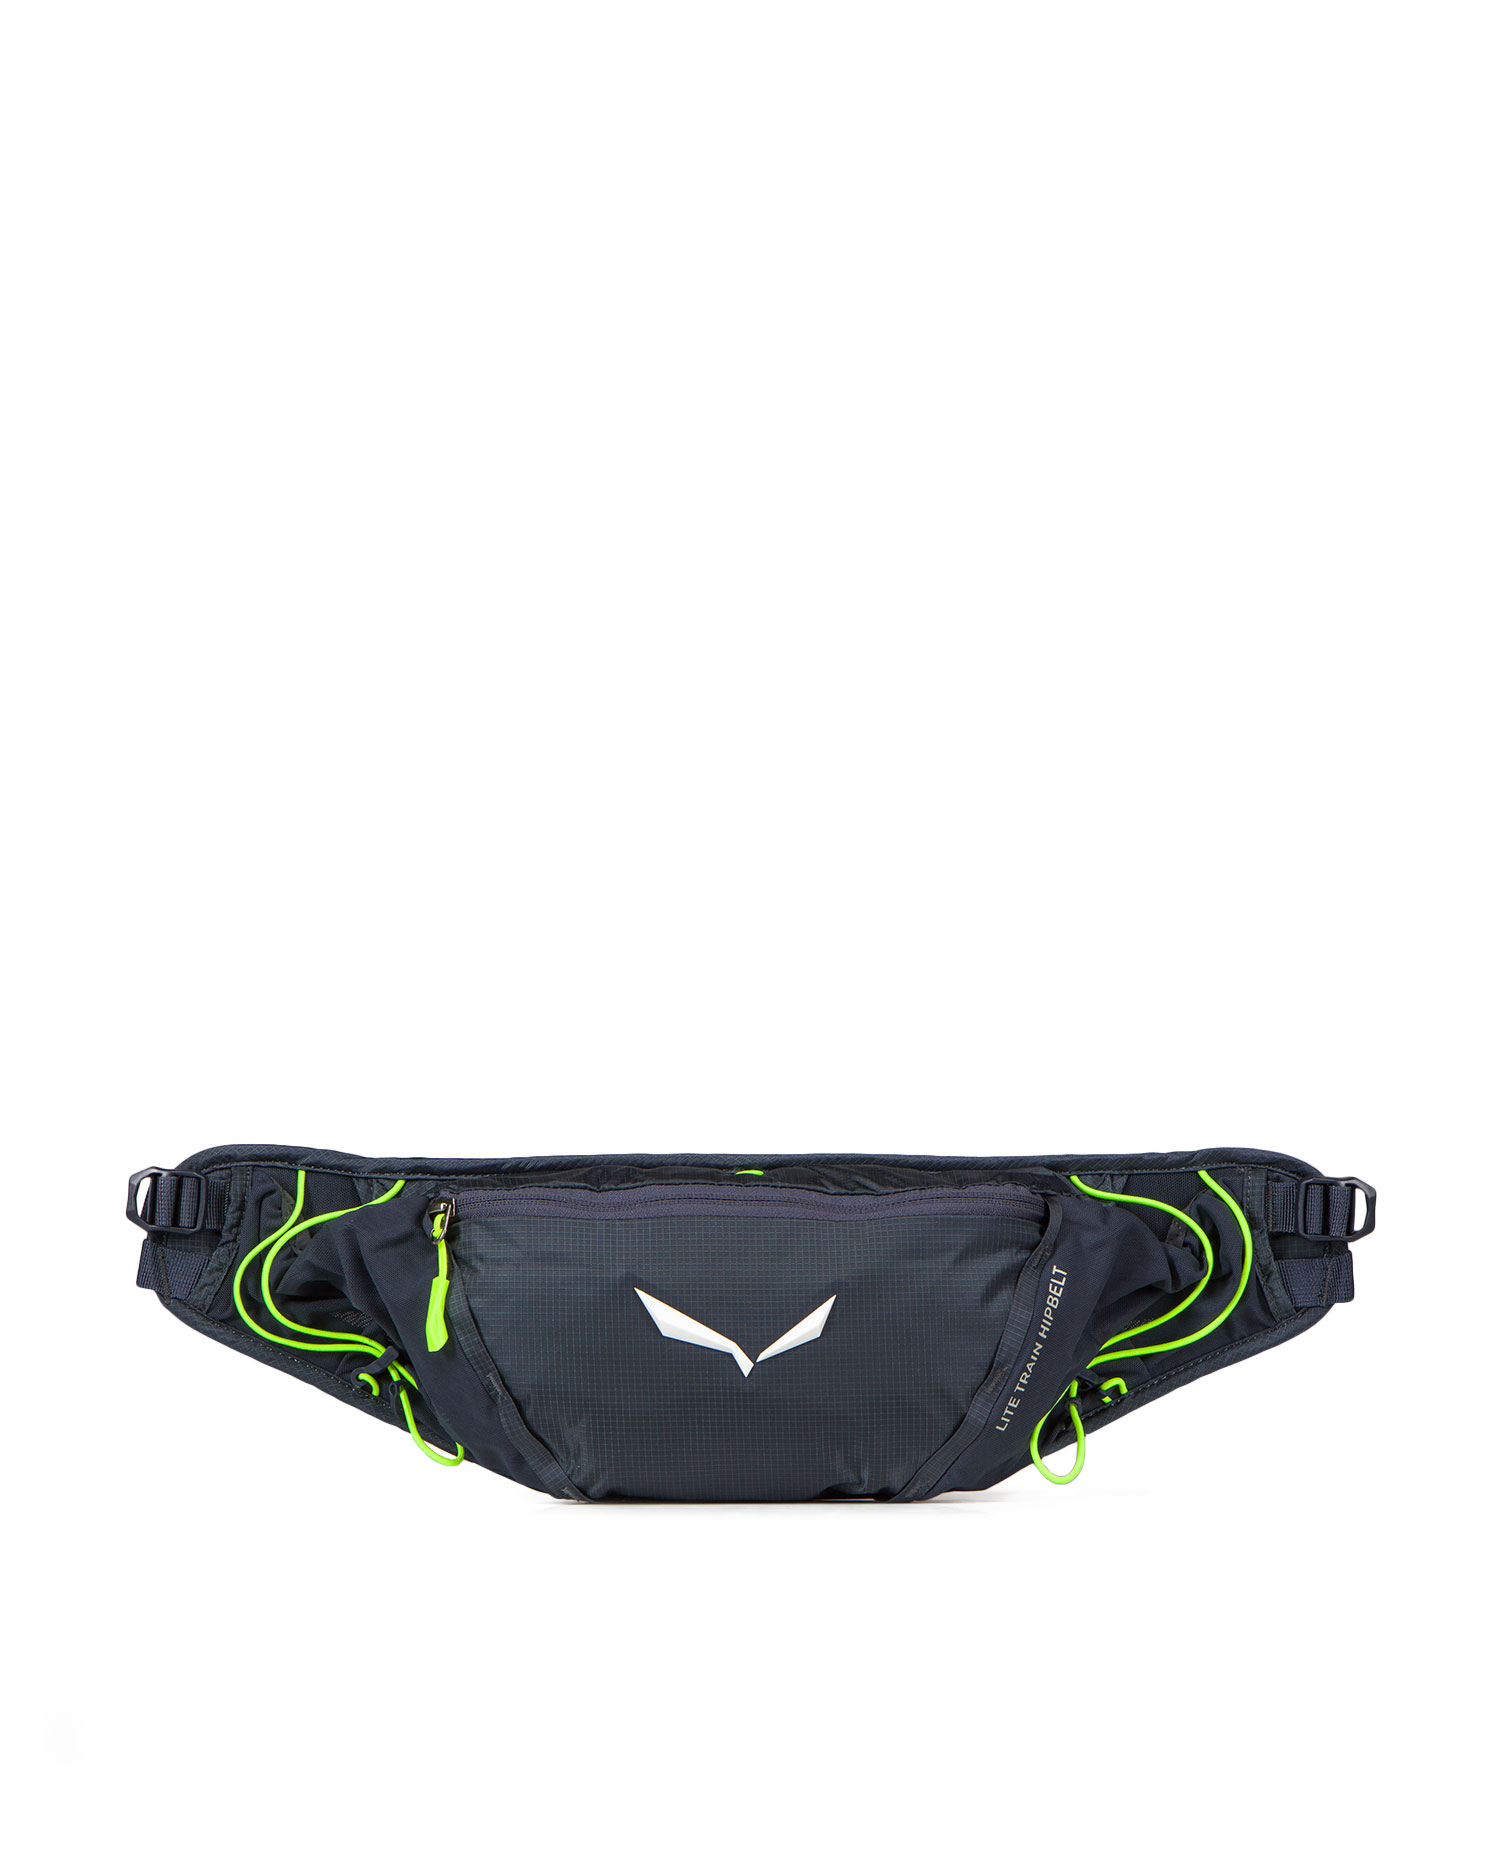 Ledvinka Salewa LITE TRAIN HIPBELT